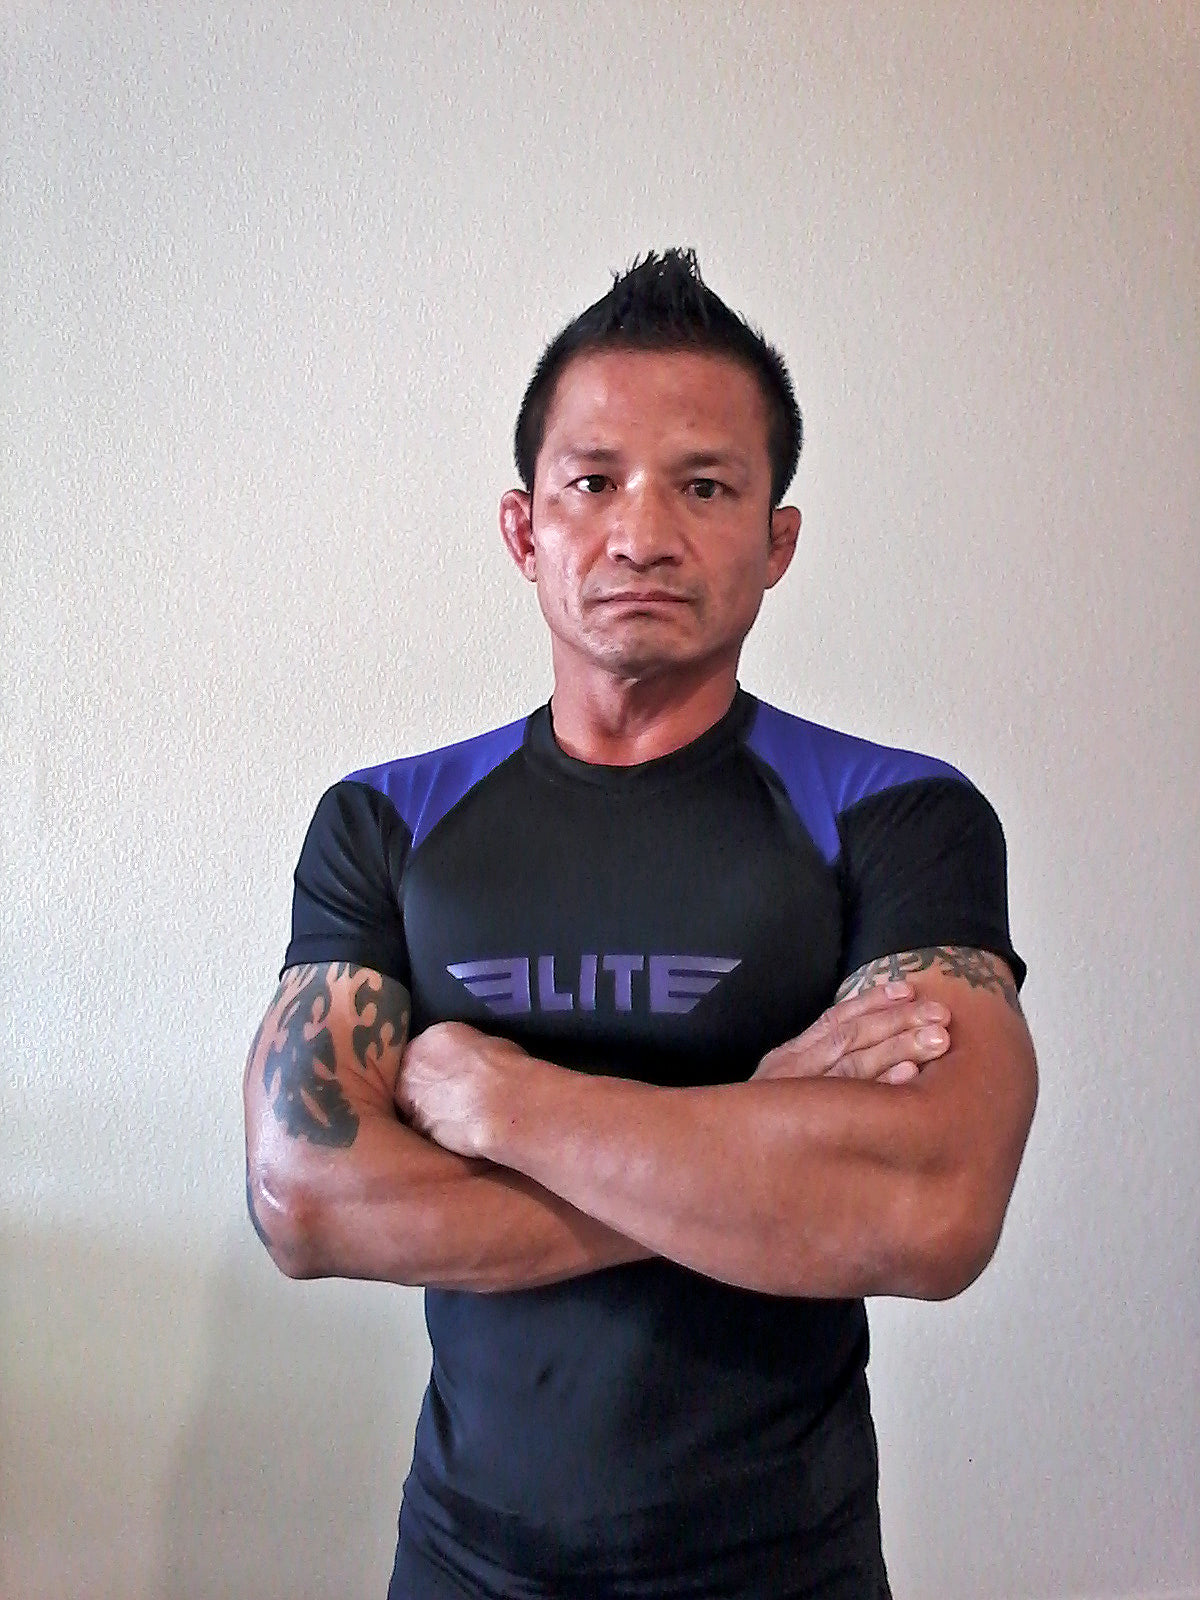 Elite Sports Team Elite Bjj Fighter Jet Lee  Image7